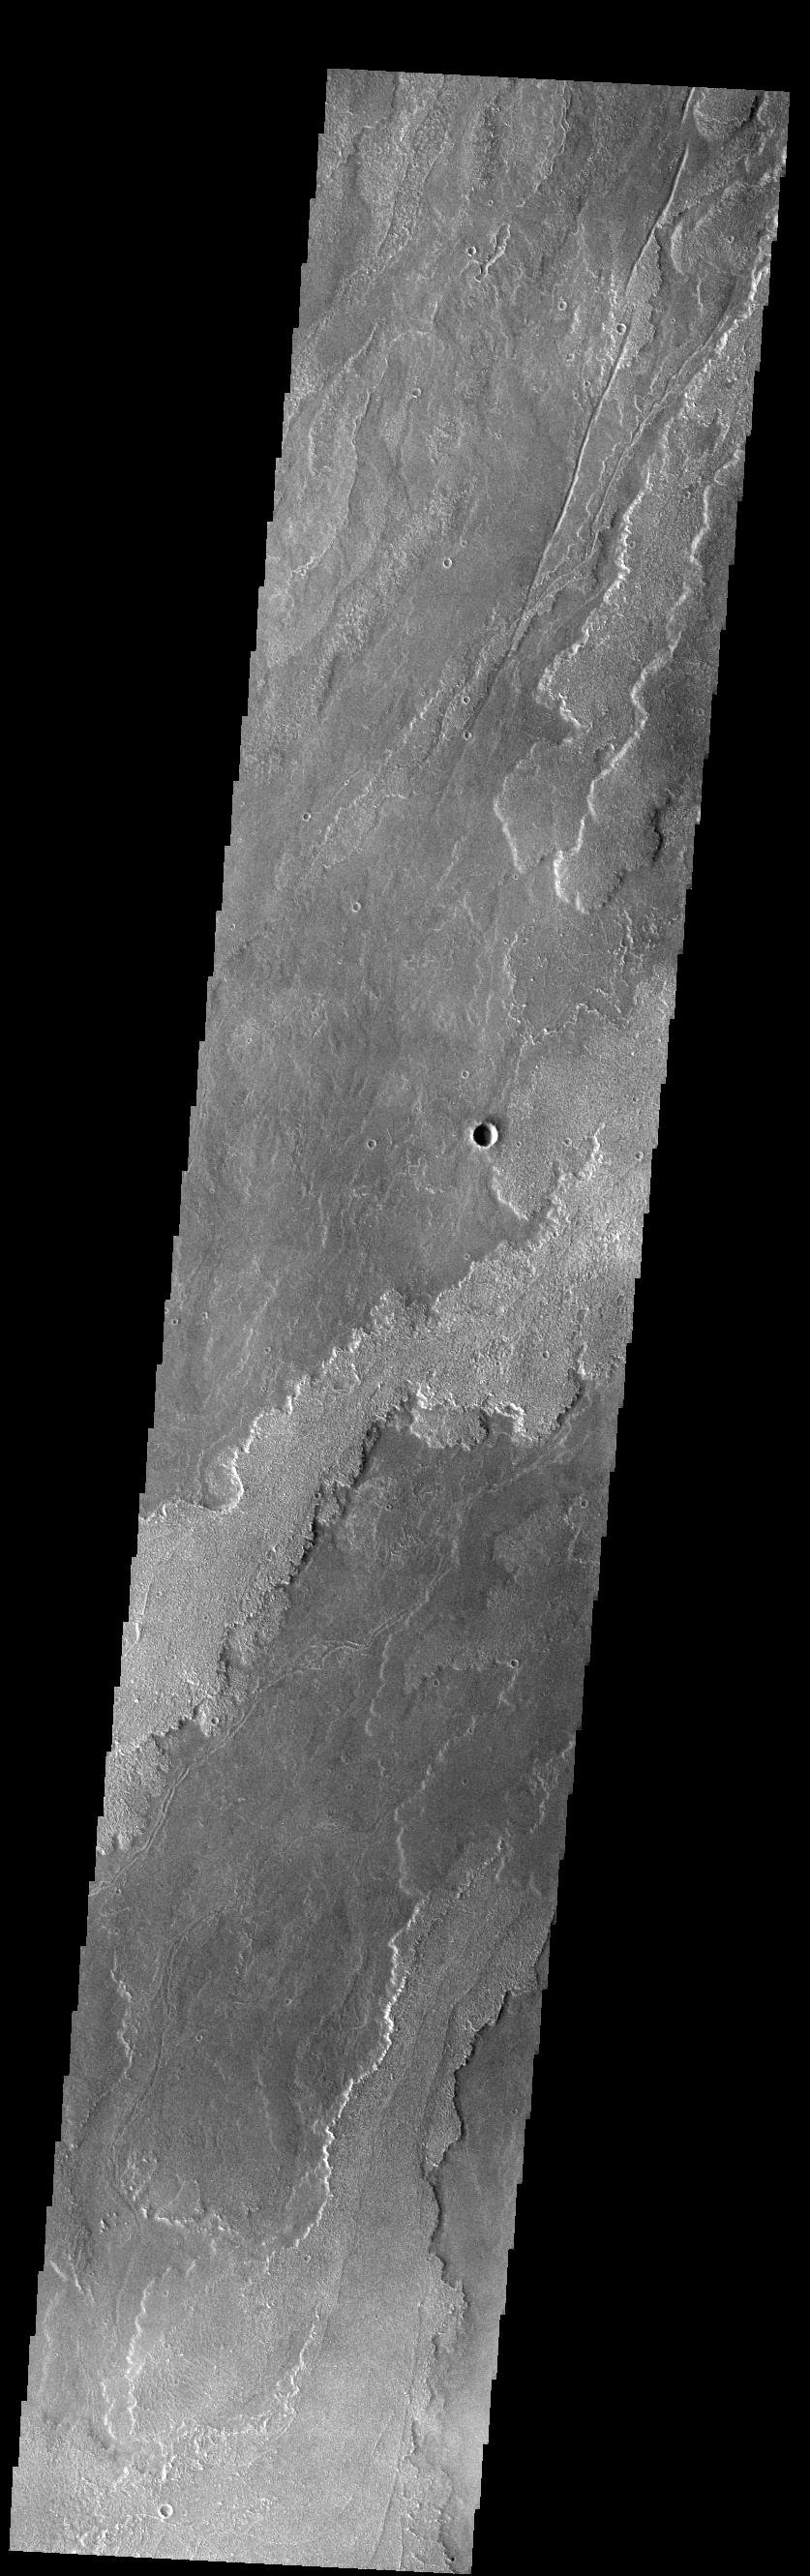 This image from NASA's Mars Odyssey shows a small portion of the immense lava flows that originated from Arsia Mons.